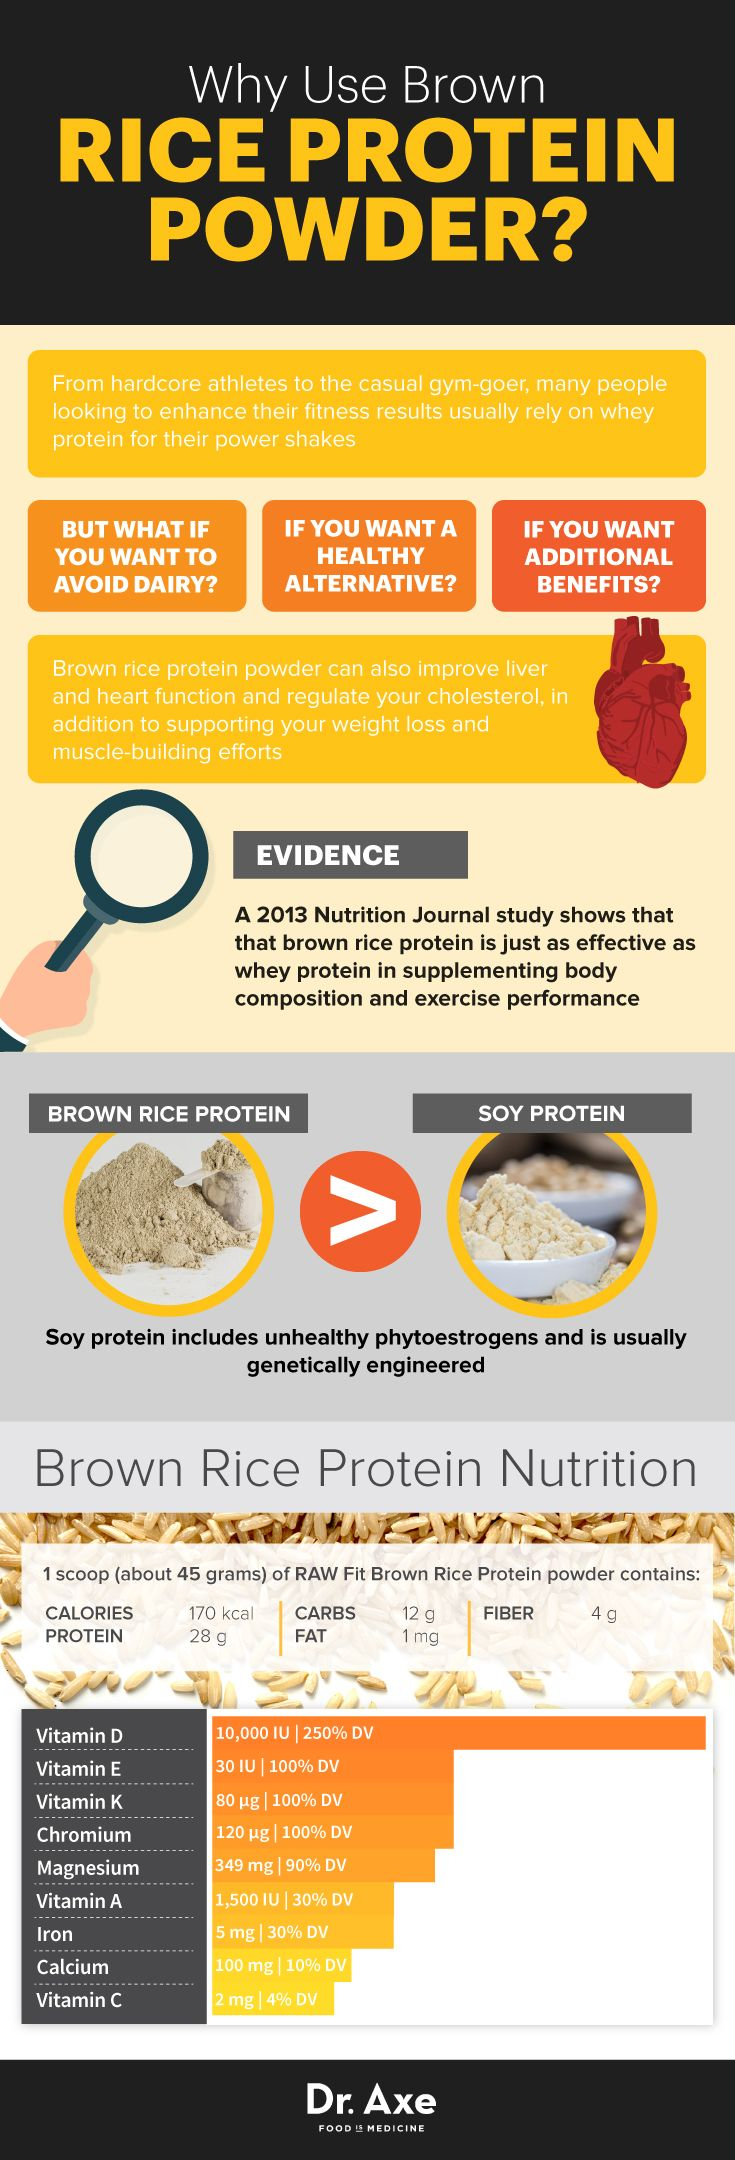 Guide to brown rice protein - Dr. Axe http://www.draxe.com #health #holistic #natural